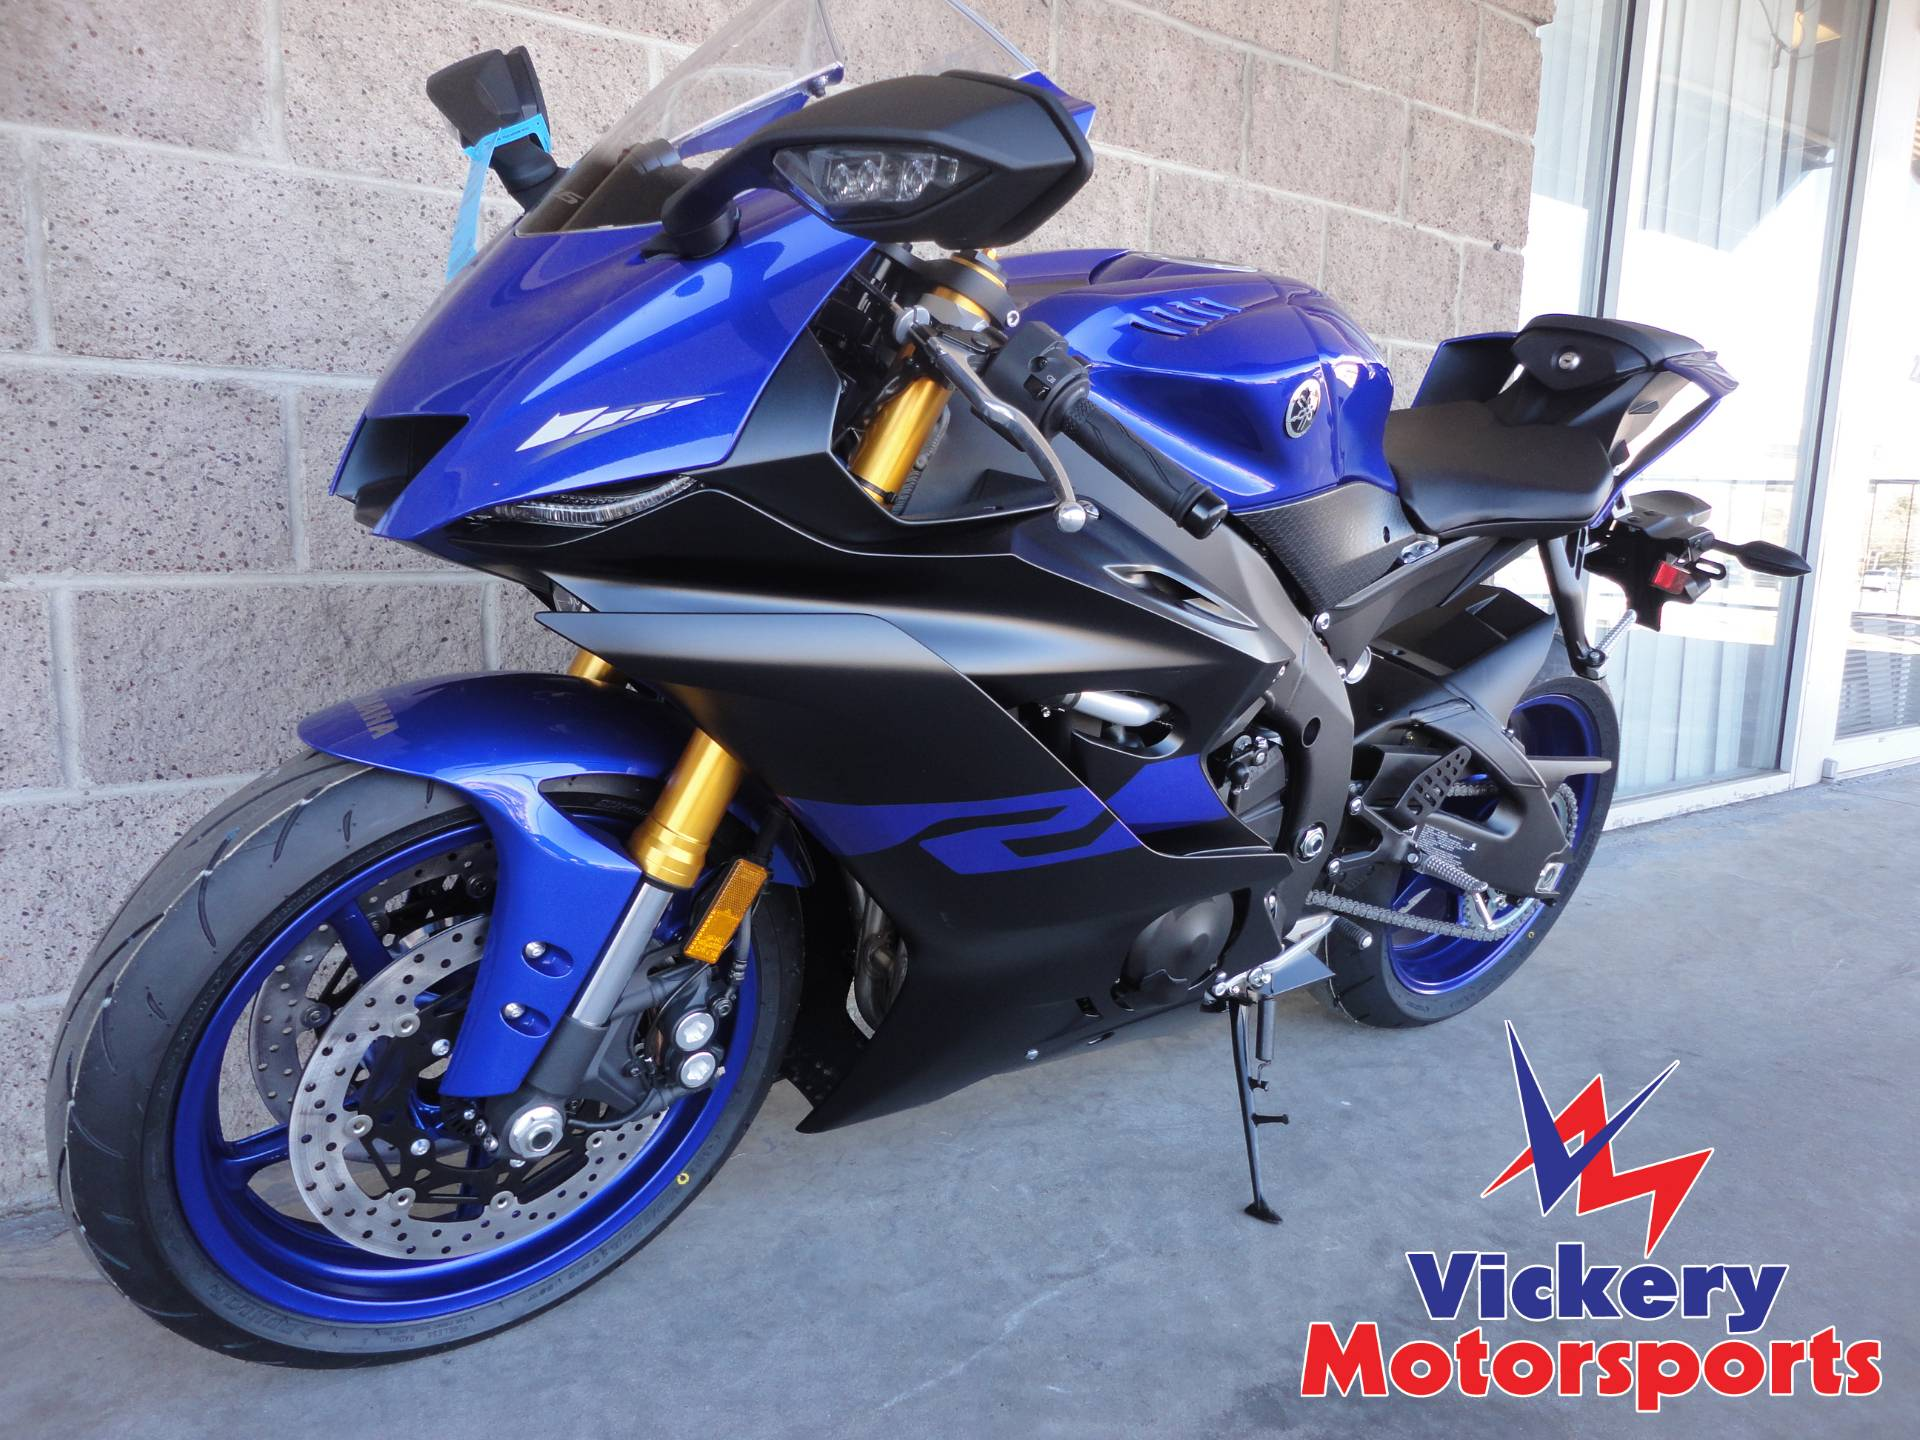 2019 yamaha yzf-r6 motorcycles denver colorado v4279